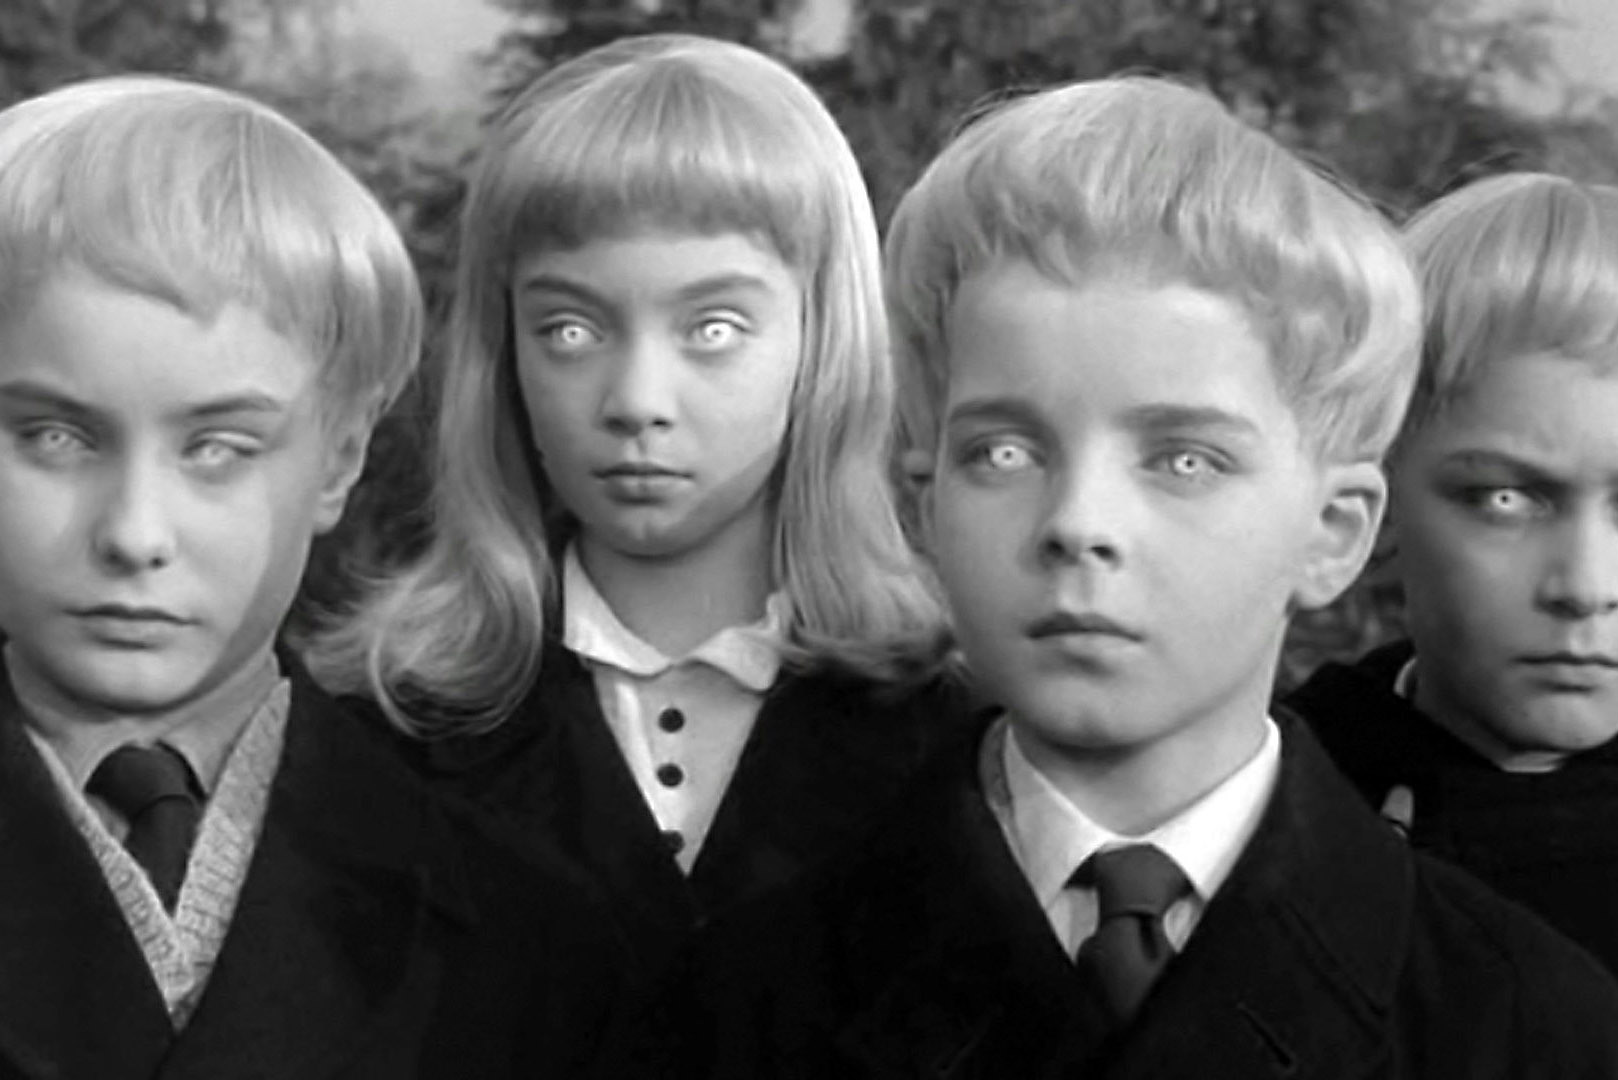 Village of the damned original